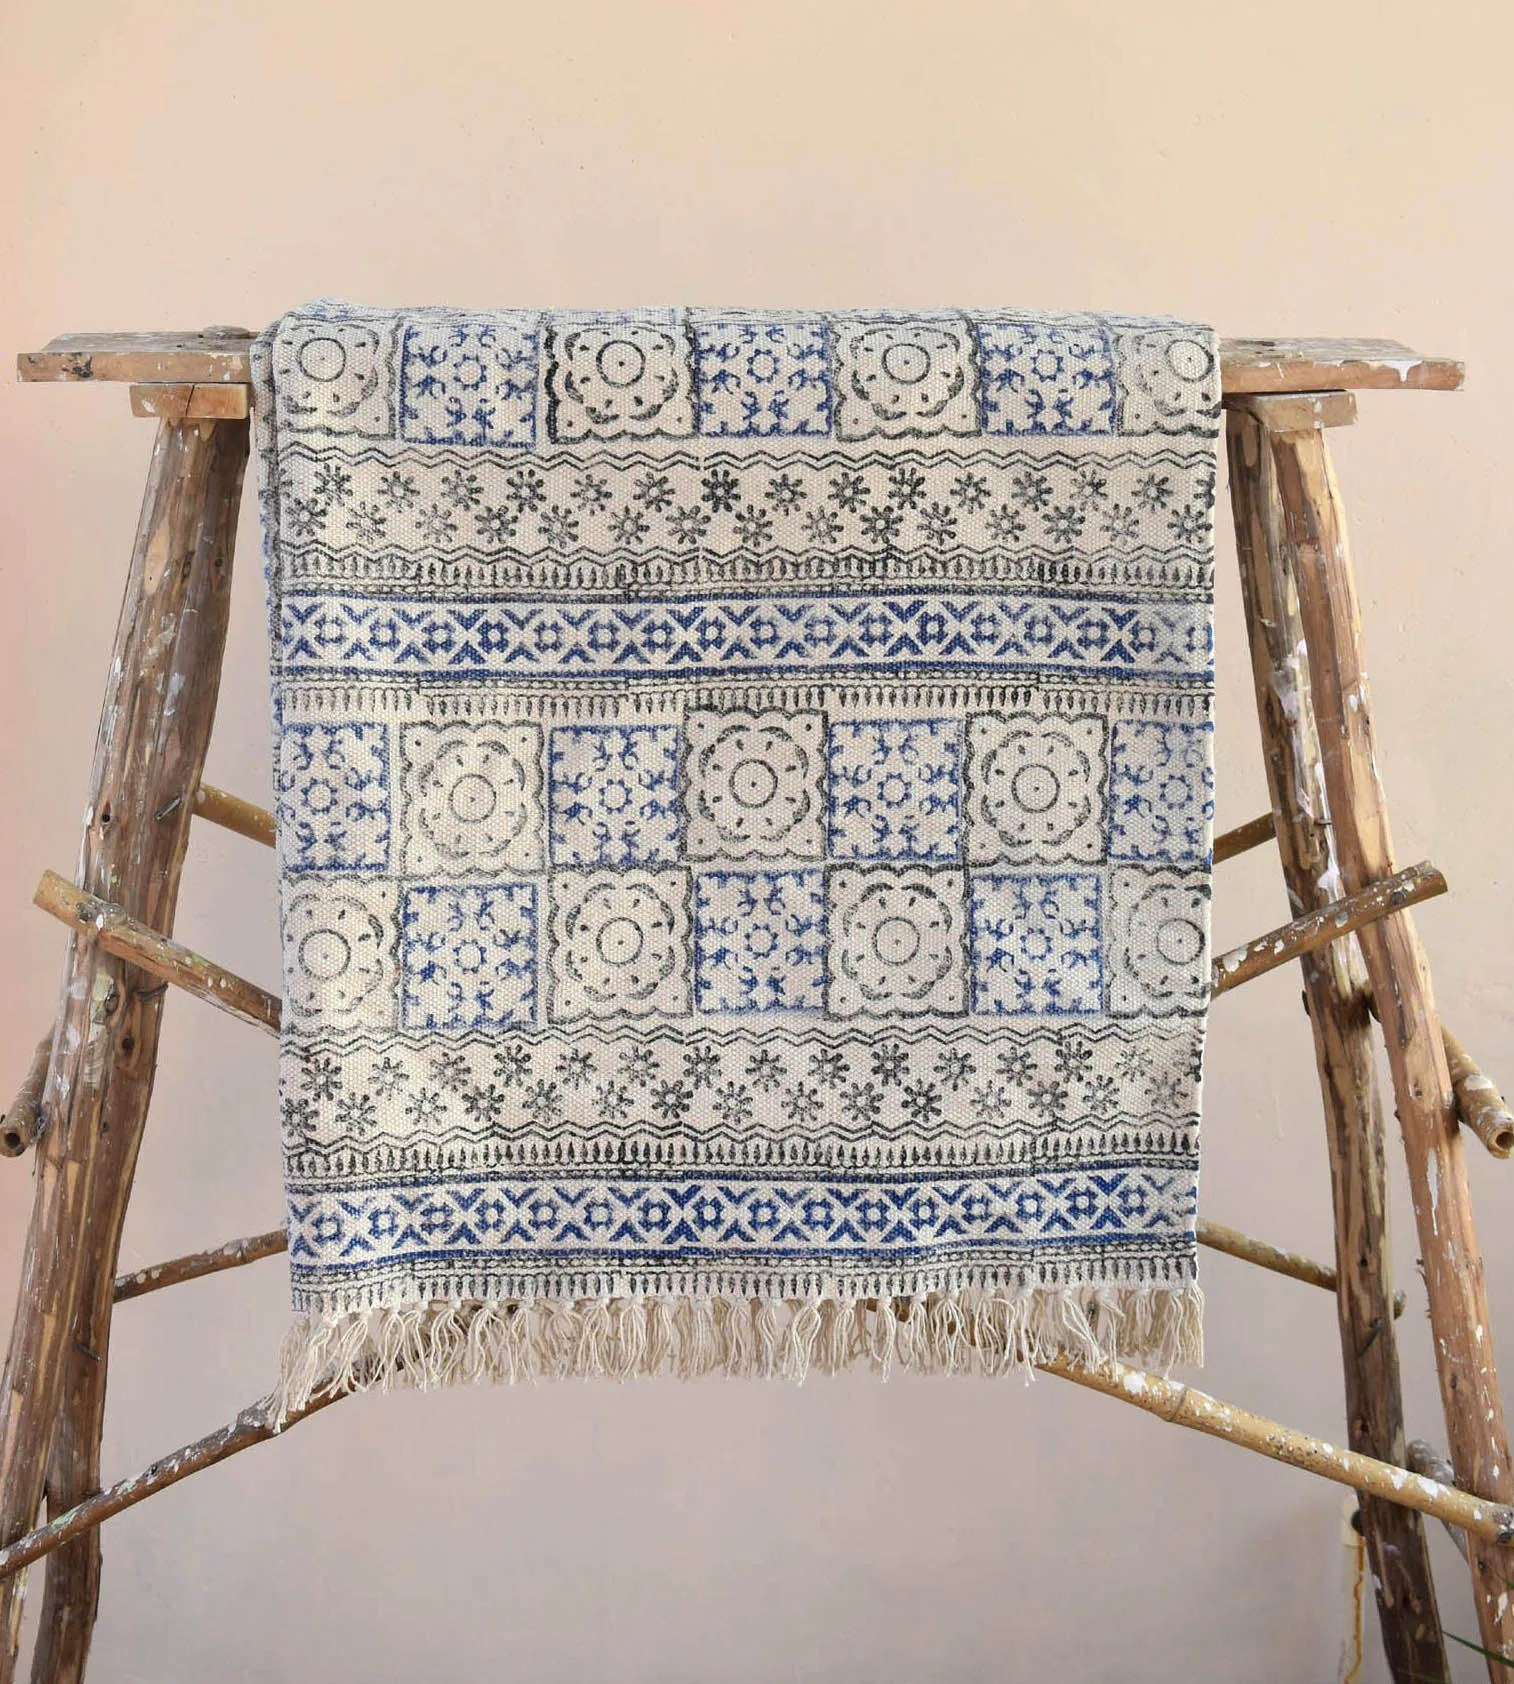 Machine Wash Rugs Large Indian Rugs Cotton Rug Woven Rug Area Rugs For Sale Decor Rug Rustic Rugs Decorative Rug Rugs Bohemian Rugs Indian Rugs